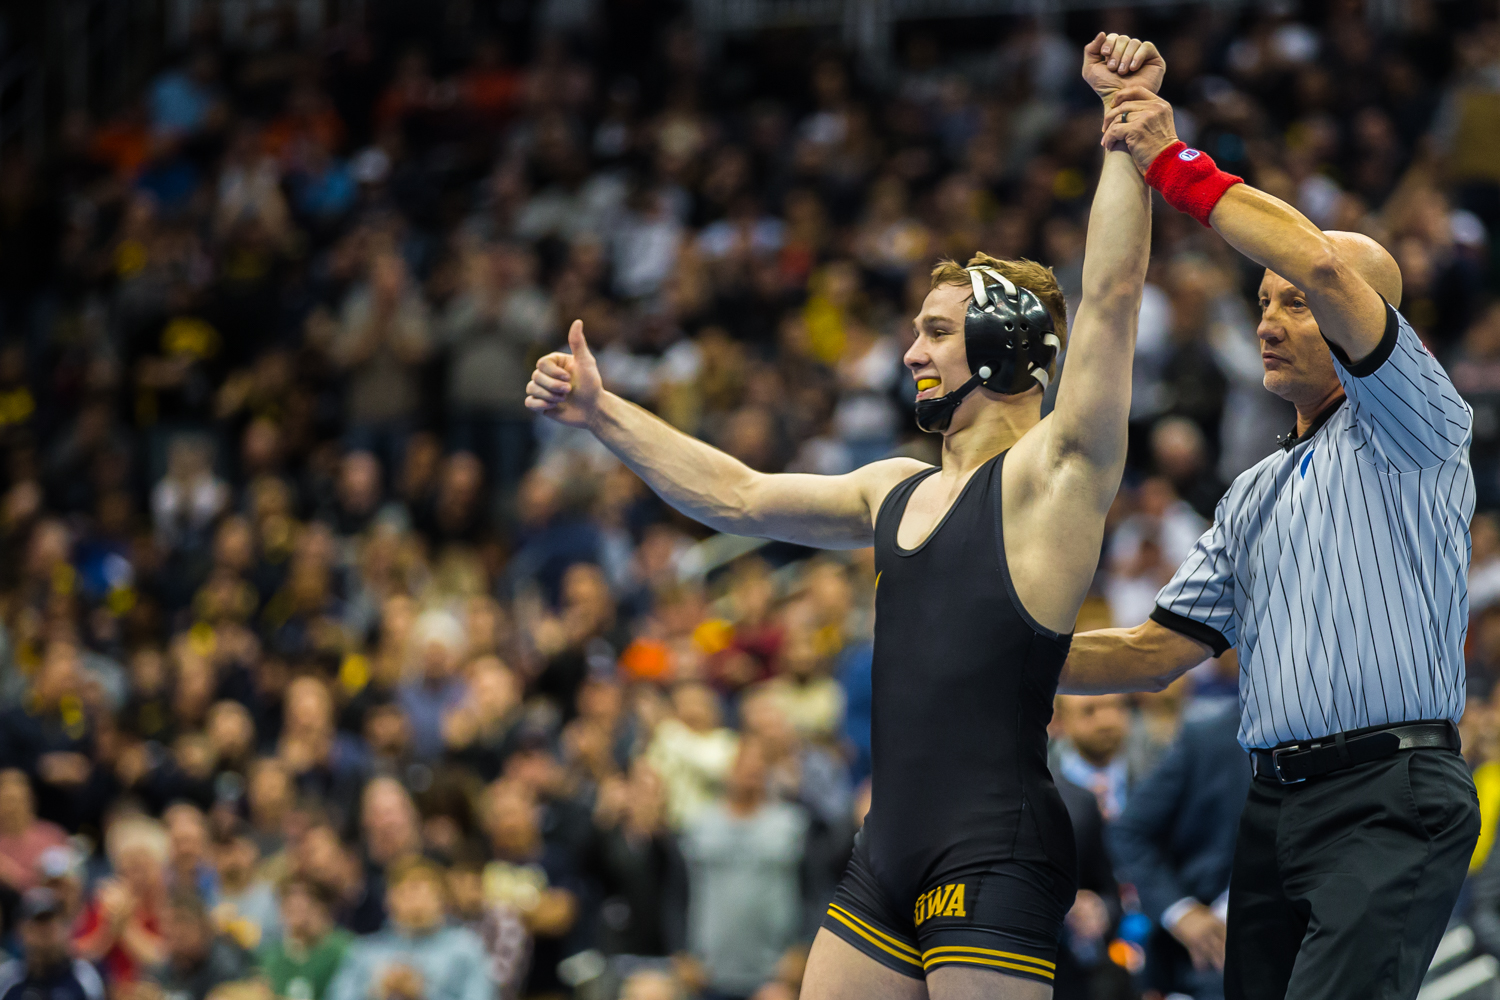 Iowa's 125-pound Spencer Lee celebrates defeating Virginia's Jack Mueller during the final session of the 2019 NCAA D1 Wrestling Championships at PPG Paints Arena in Pittsburgh, PA on Saturday, March 23, 2019. Lee won by decision, 5-0, and defended his national title.